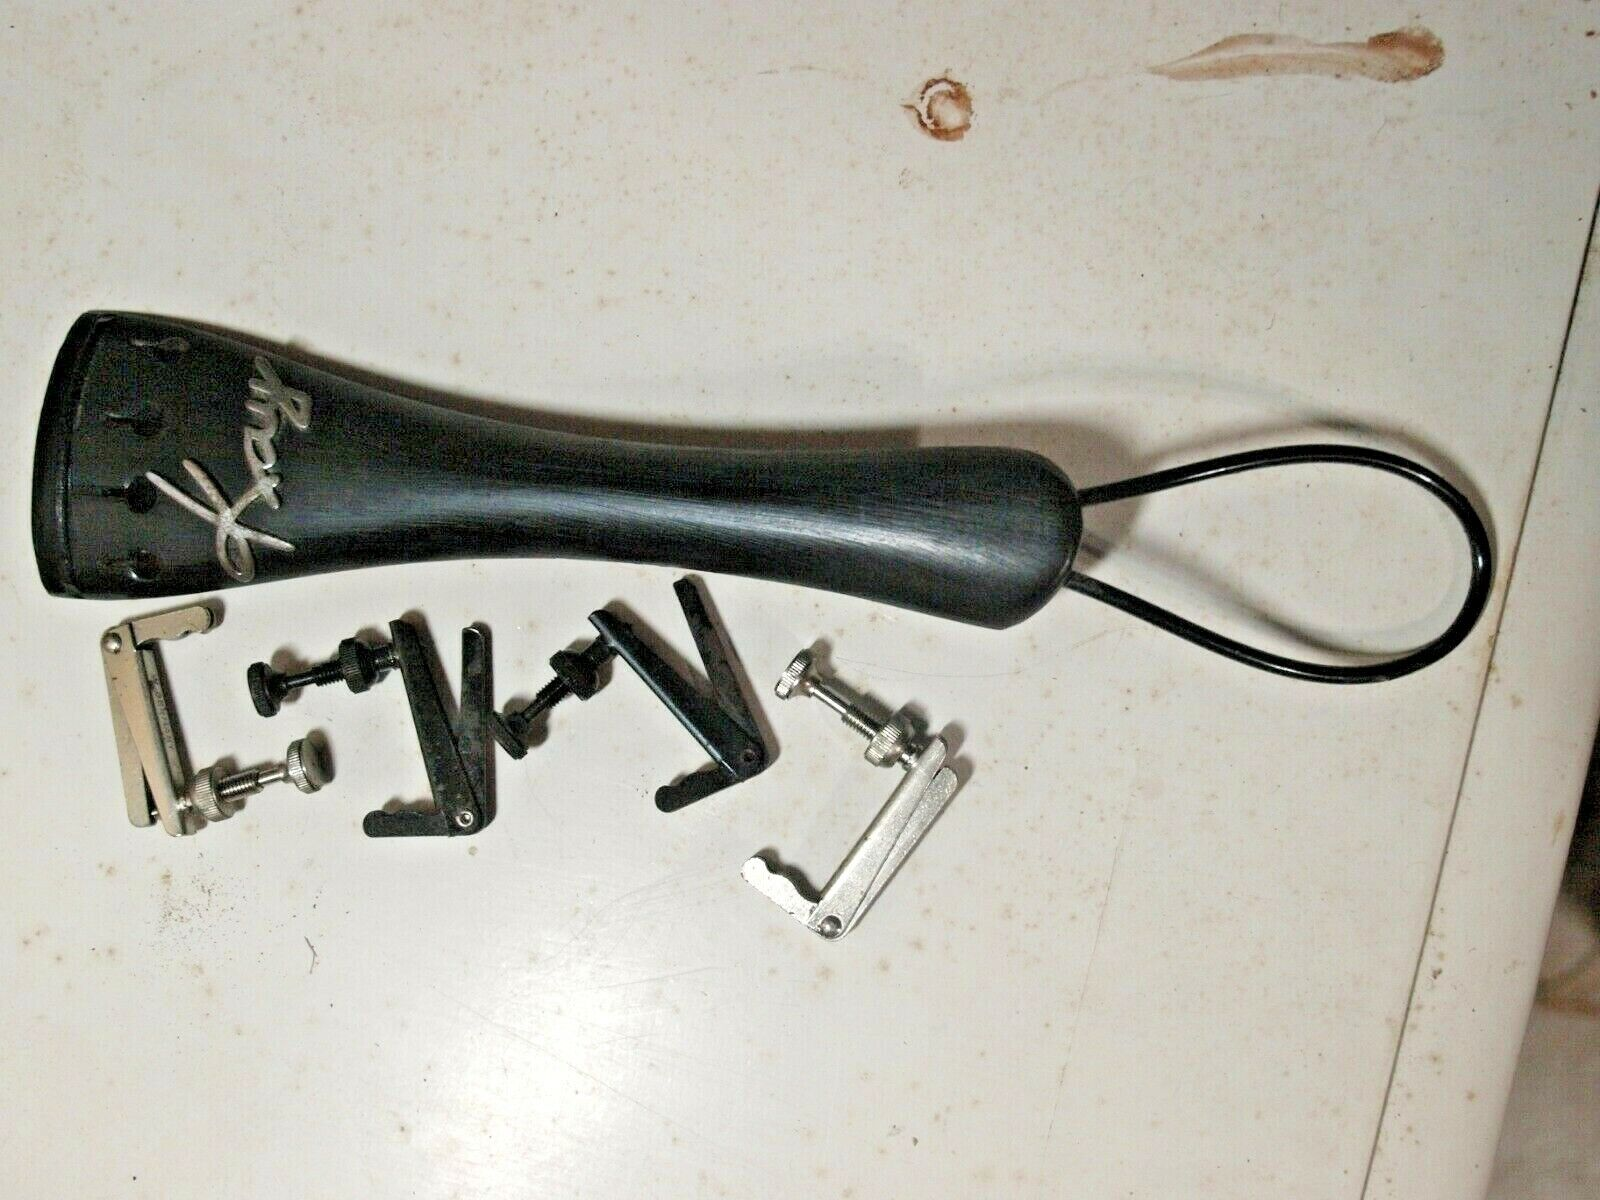 3/4 Vintage Kay Logo Cello Tailpiece With 4 Fine Tuners And Tailgut - $6.00